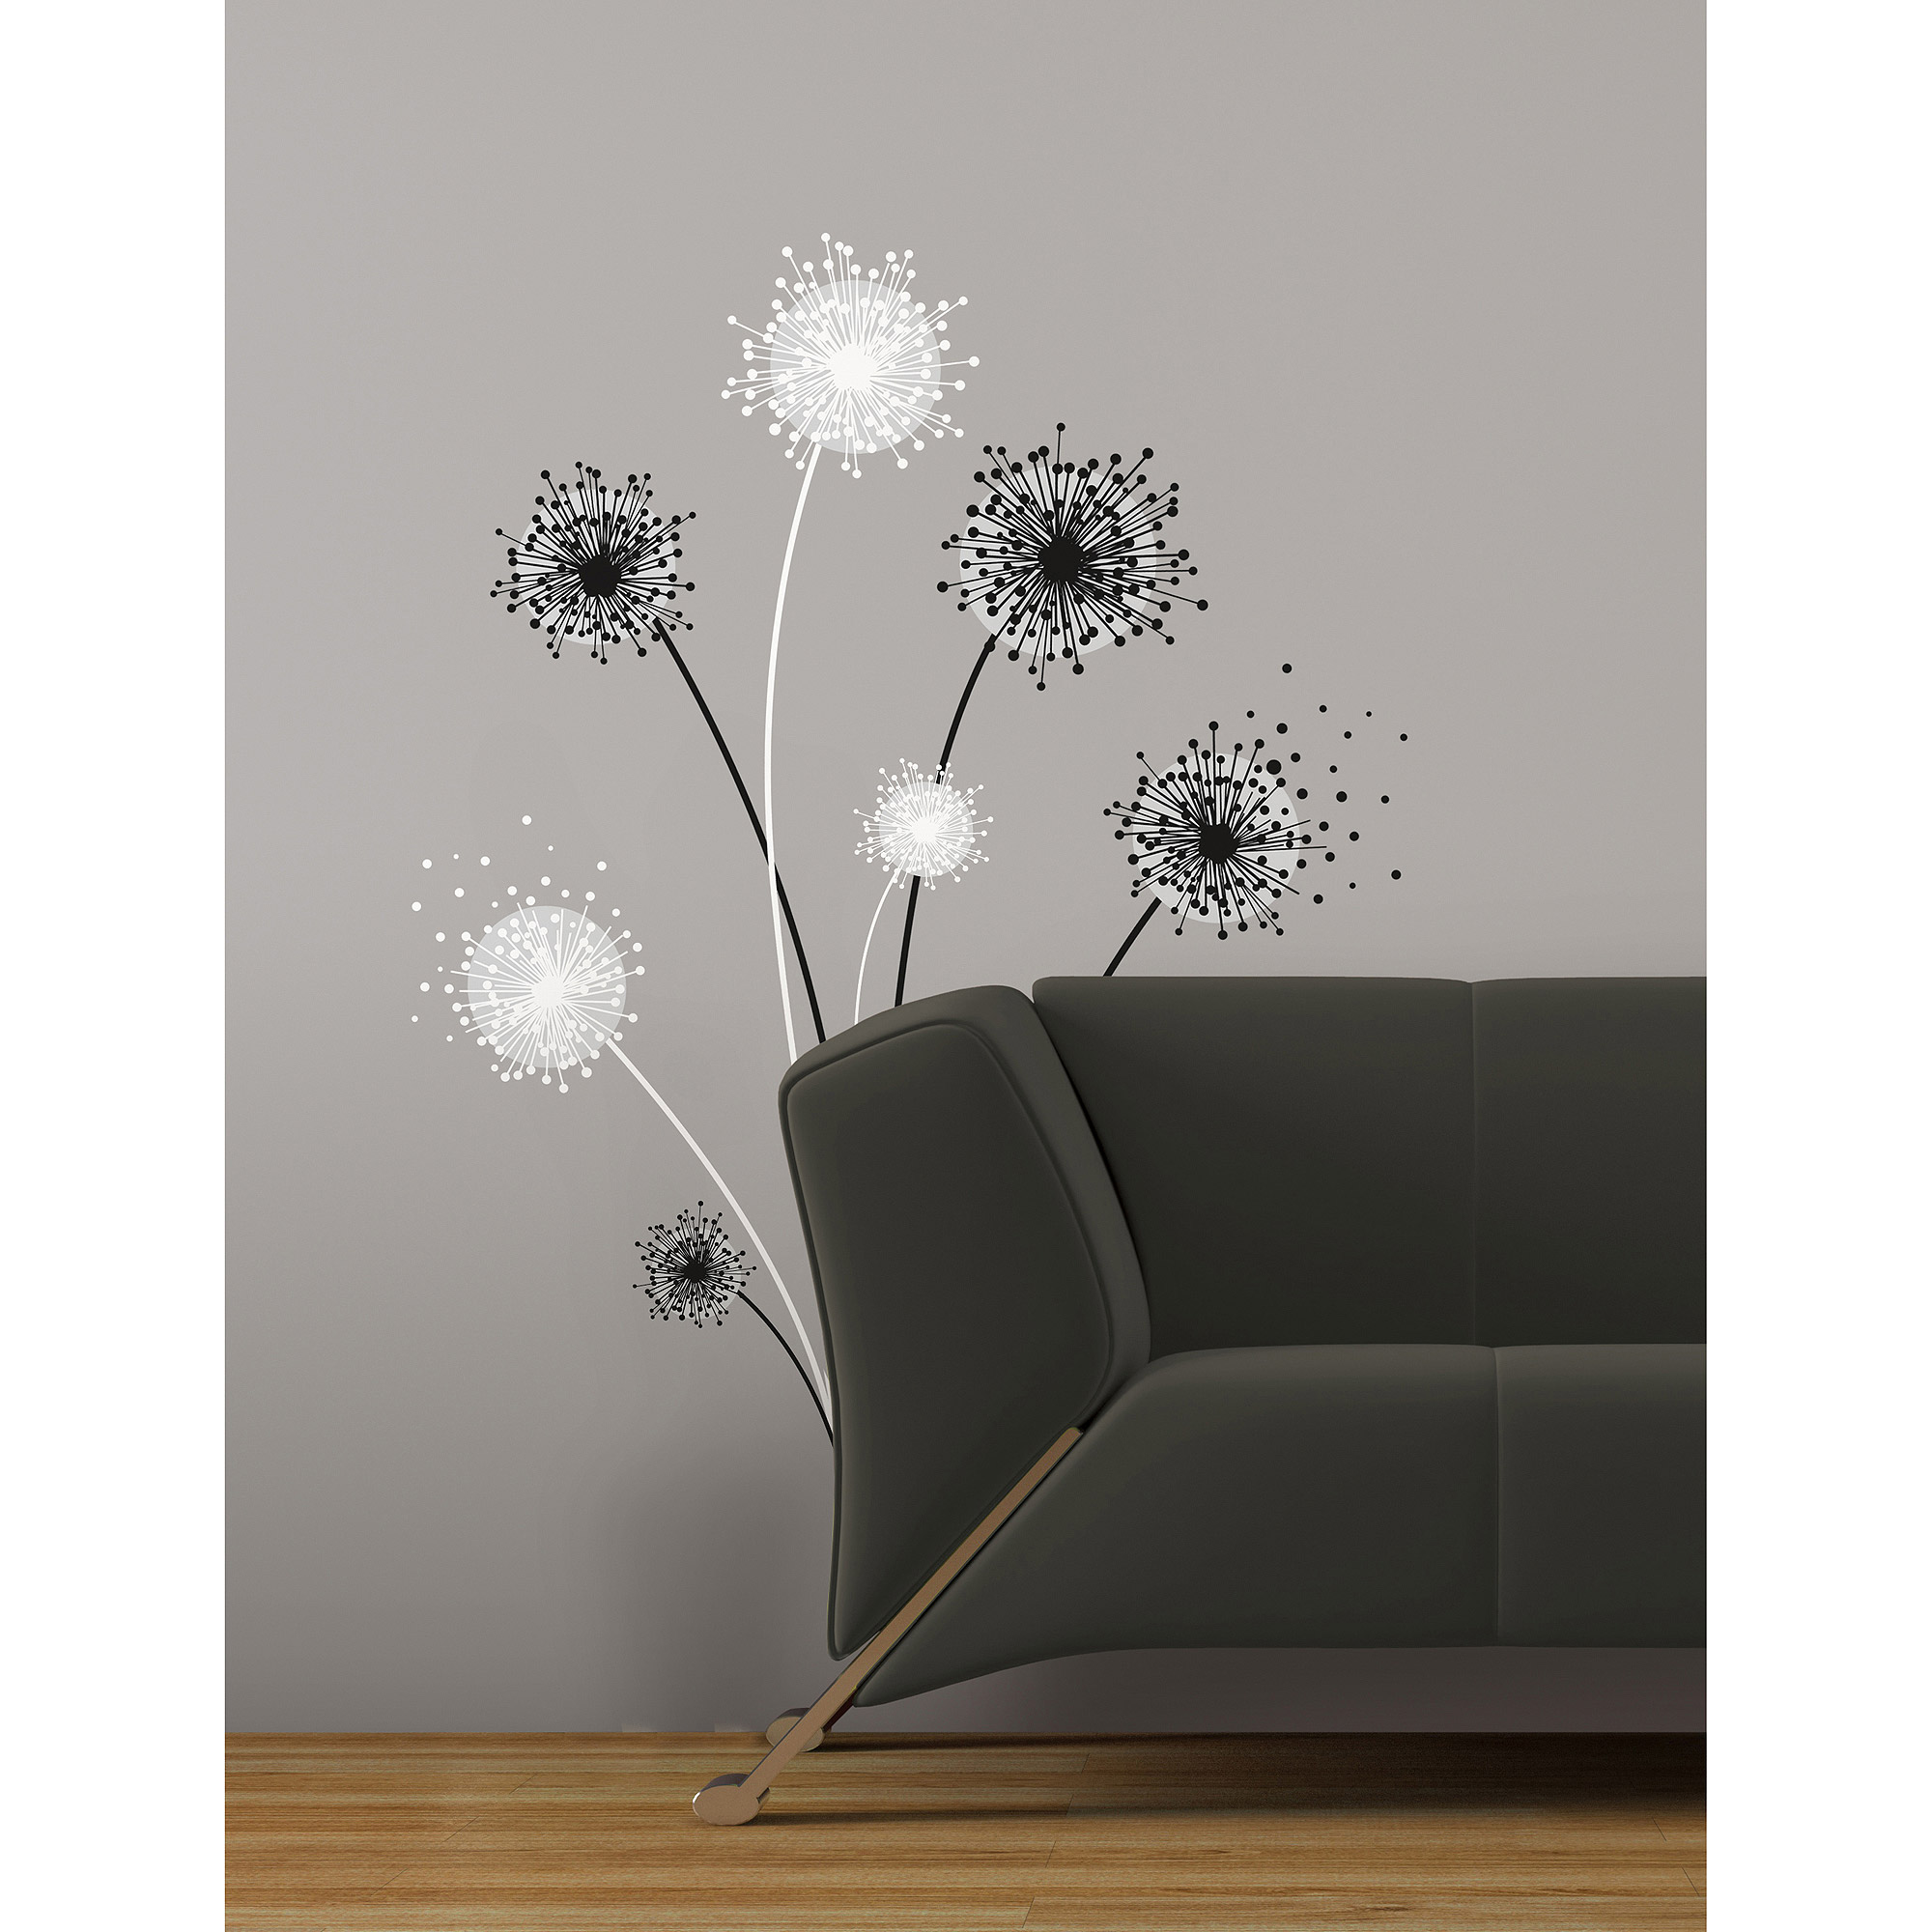 RoomMates Graphic Dandelion Peel U0026 Stick Giant Wall Decal   Walmart.com